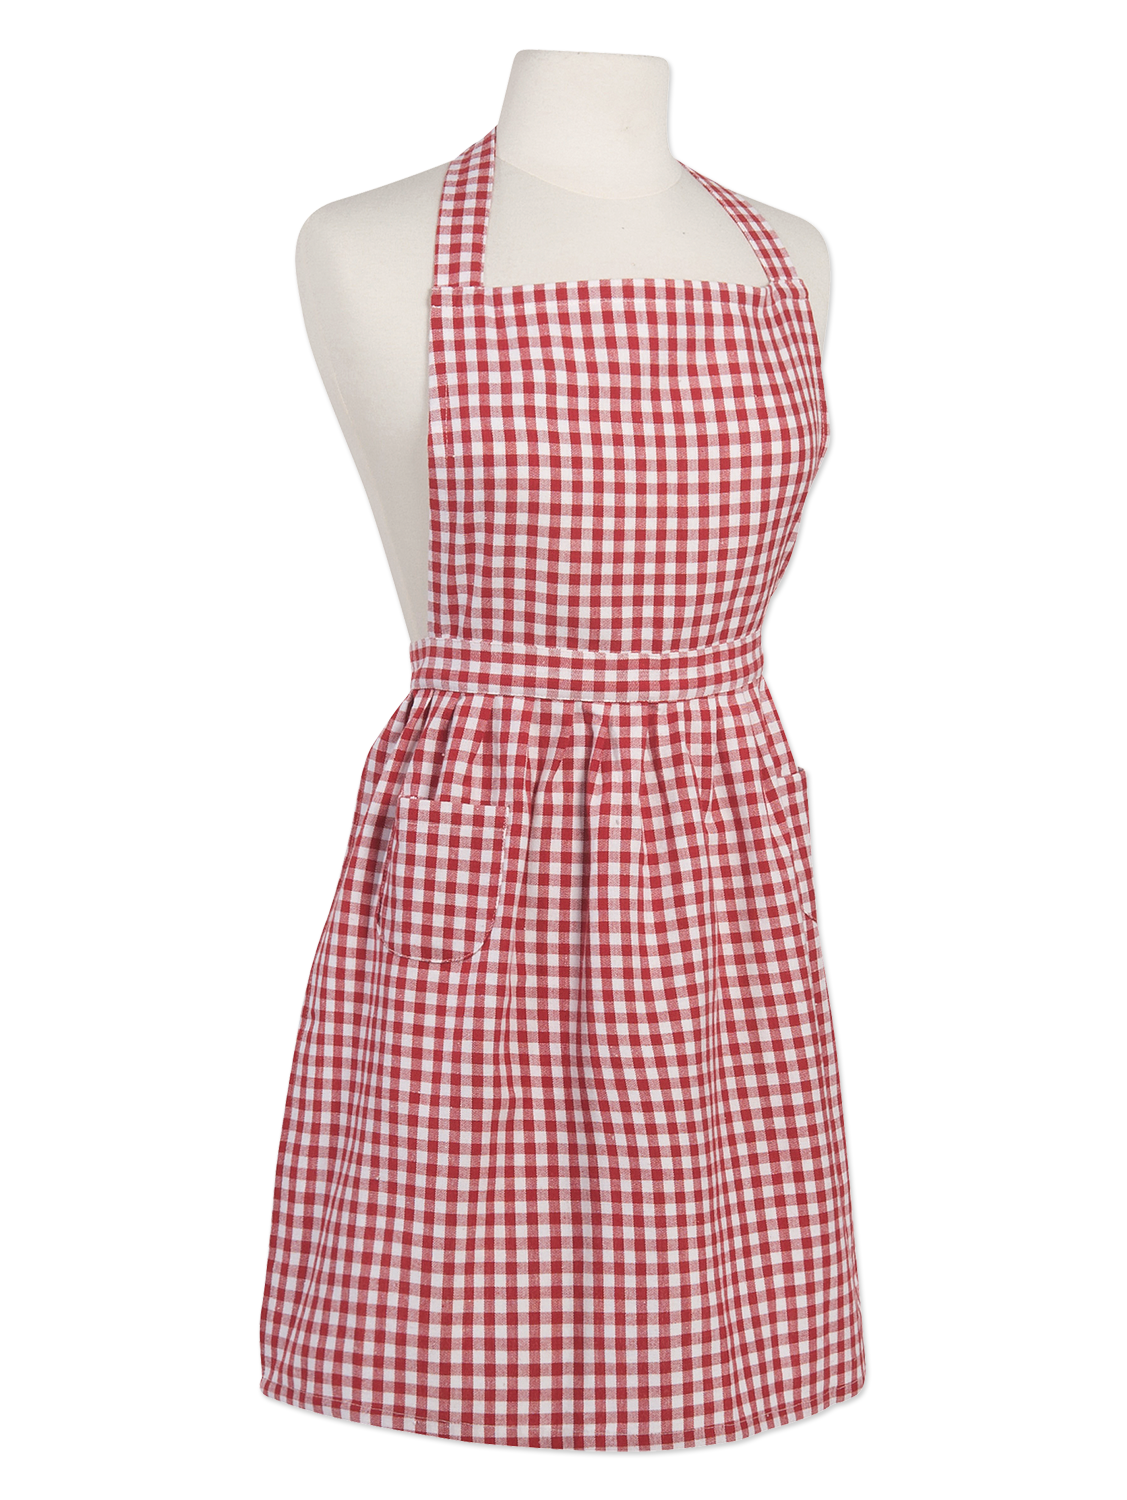 Frilly Red Gingham Check Cotton Apron